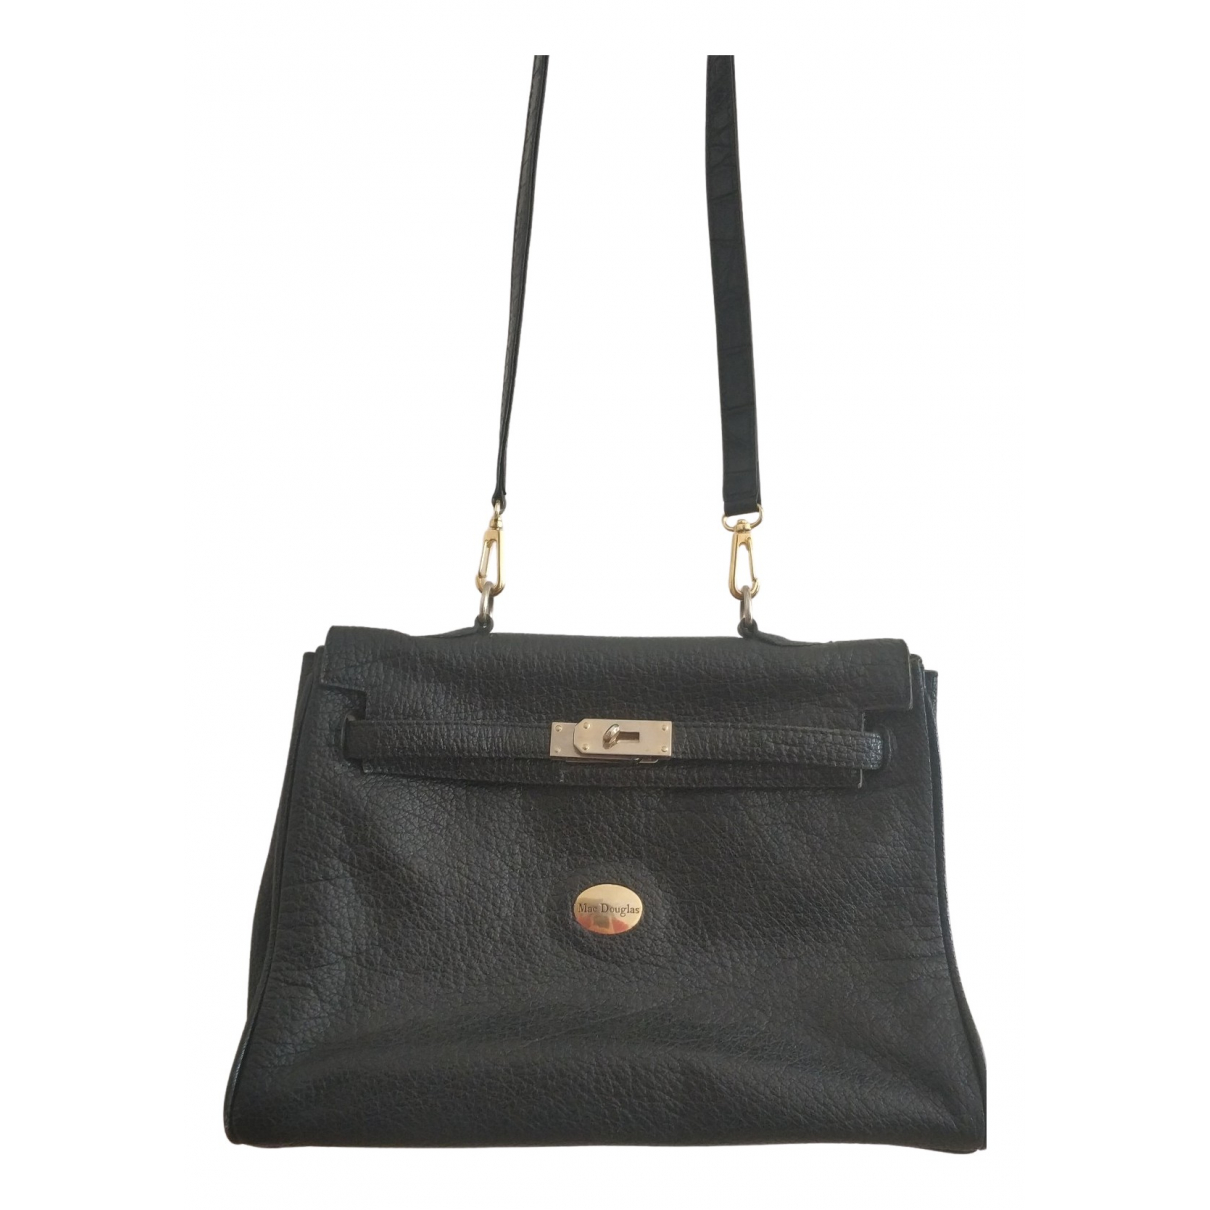 Mac Douglas N Black Leather handbag for Women N